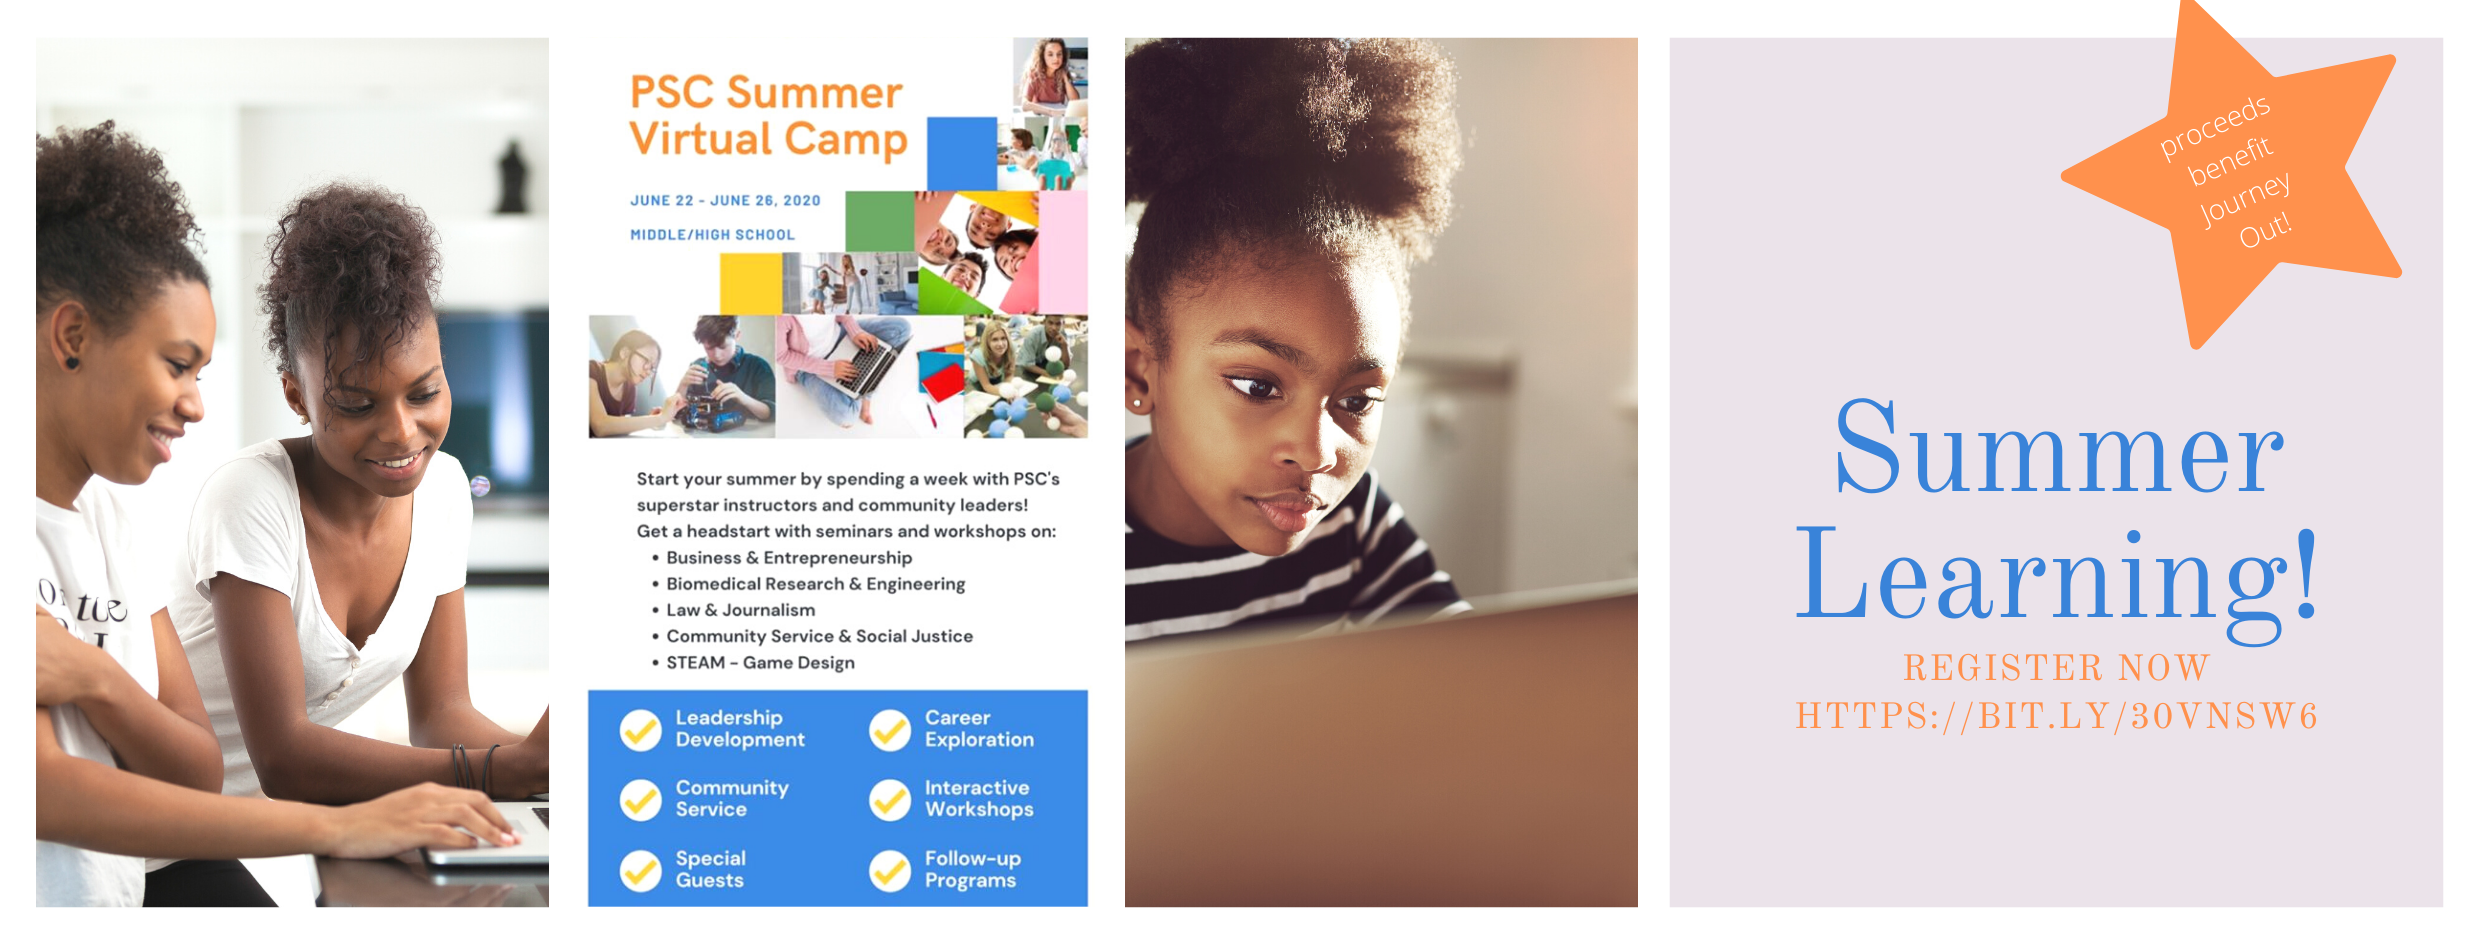 summer learning, ecourse, online learning, students, teens, teen advocates club, sex trafficking prevention, human trafficking prevention